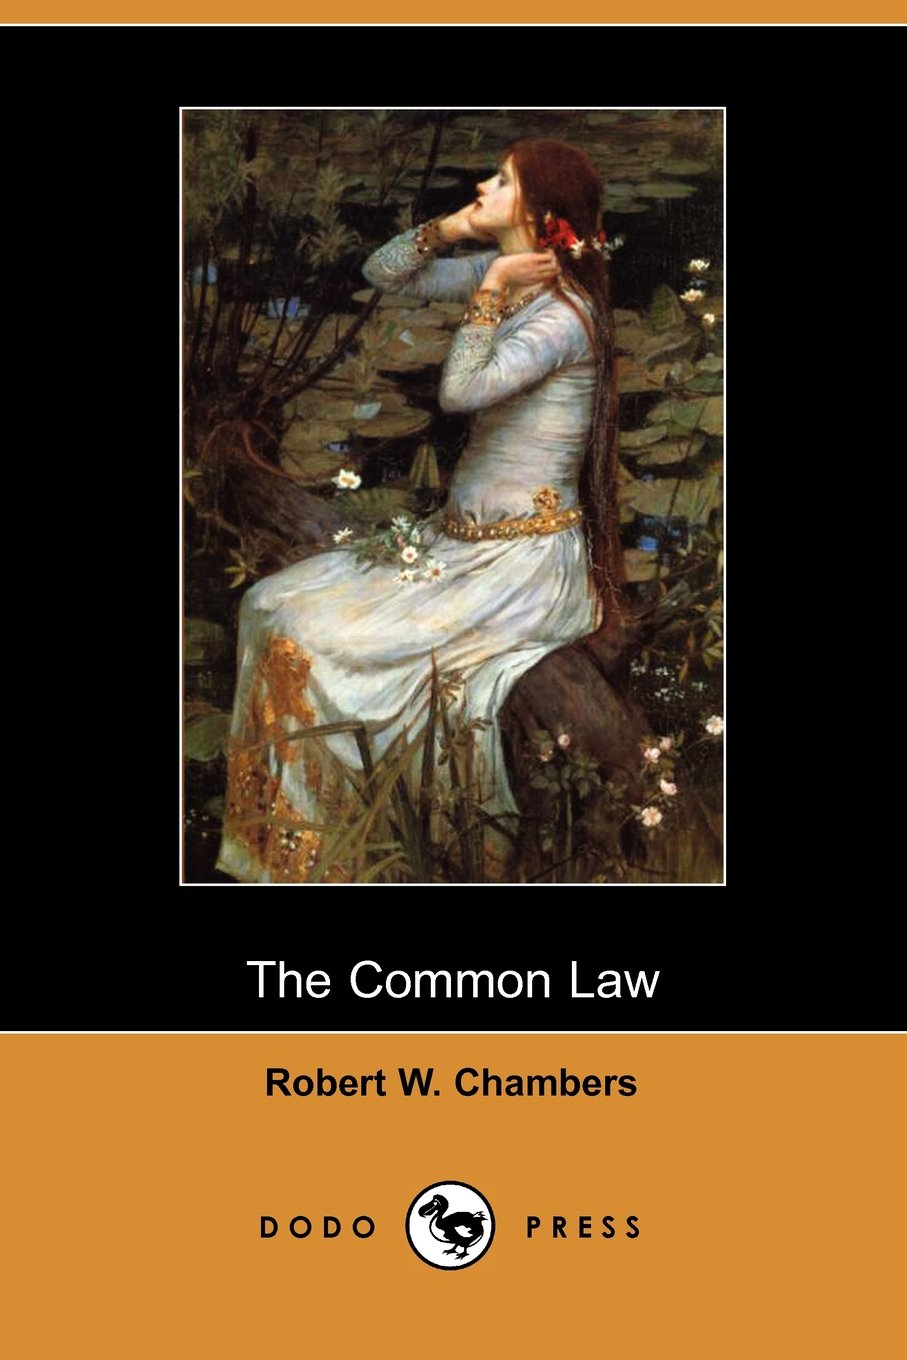 Download The Common Law (Dodo Press): Classic Novel By The American Artist And Writer, Most Well Known For His Collection Of Weird Fiction Short Stories; ebook